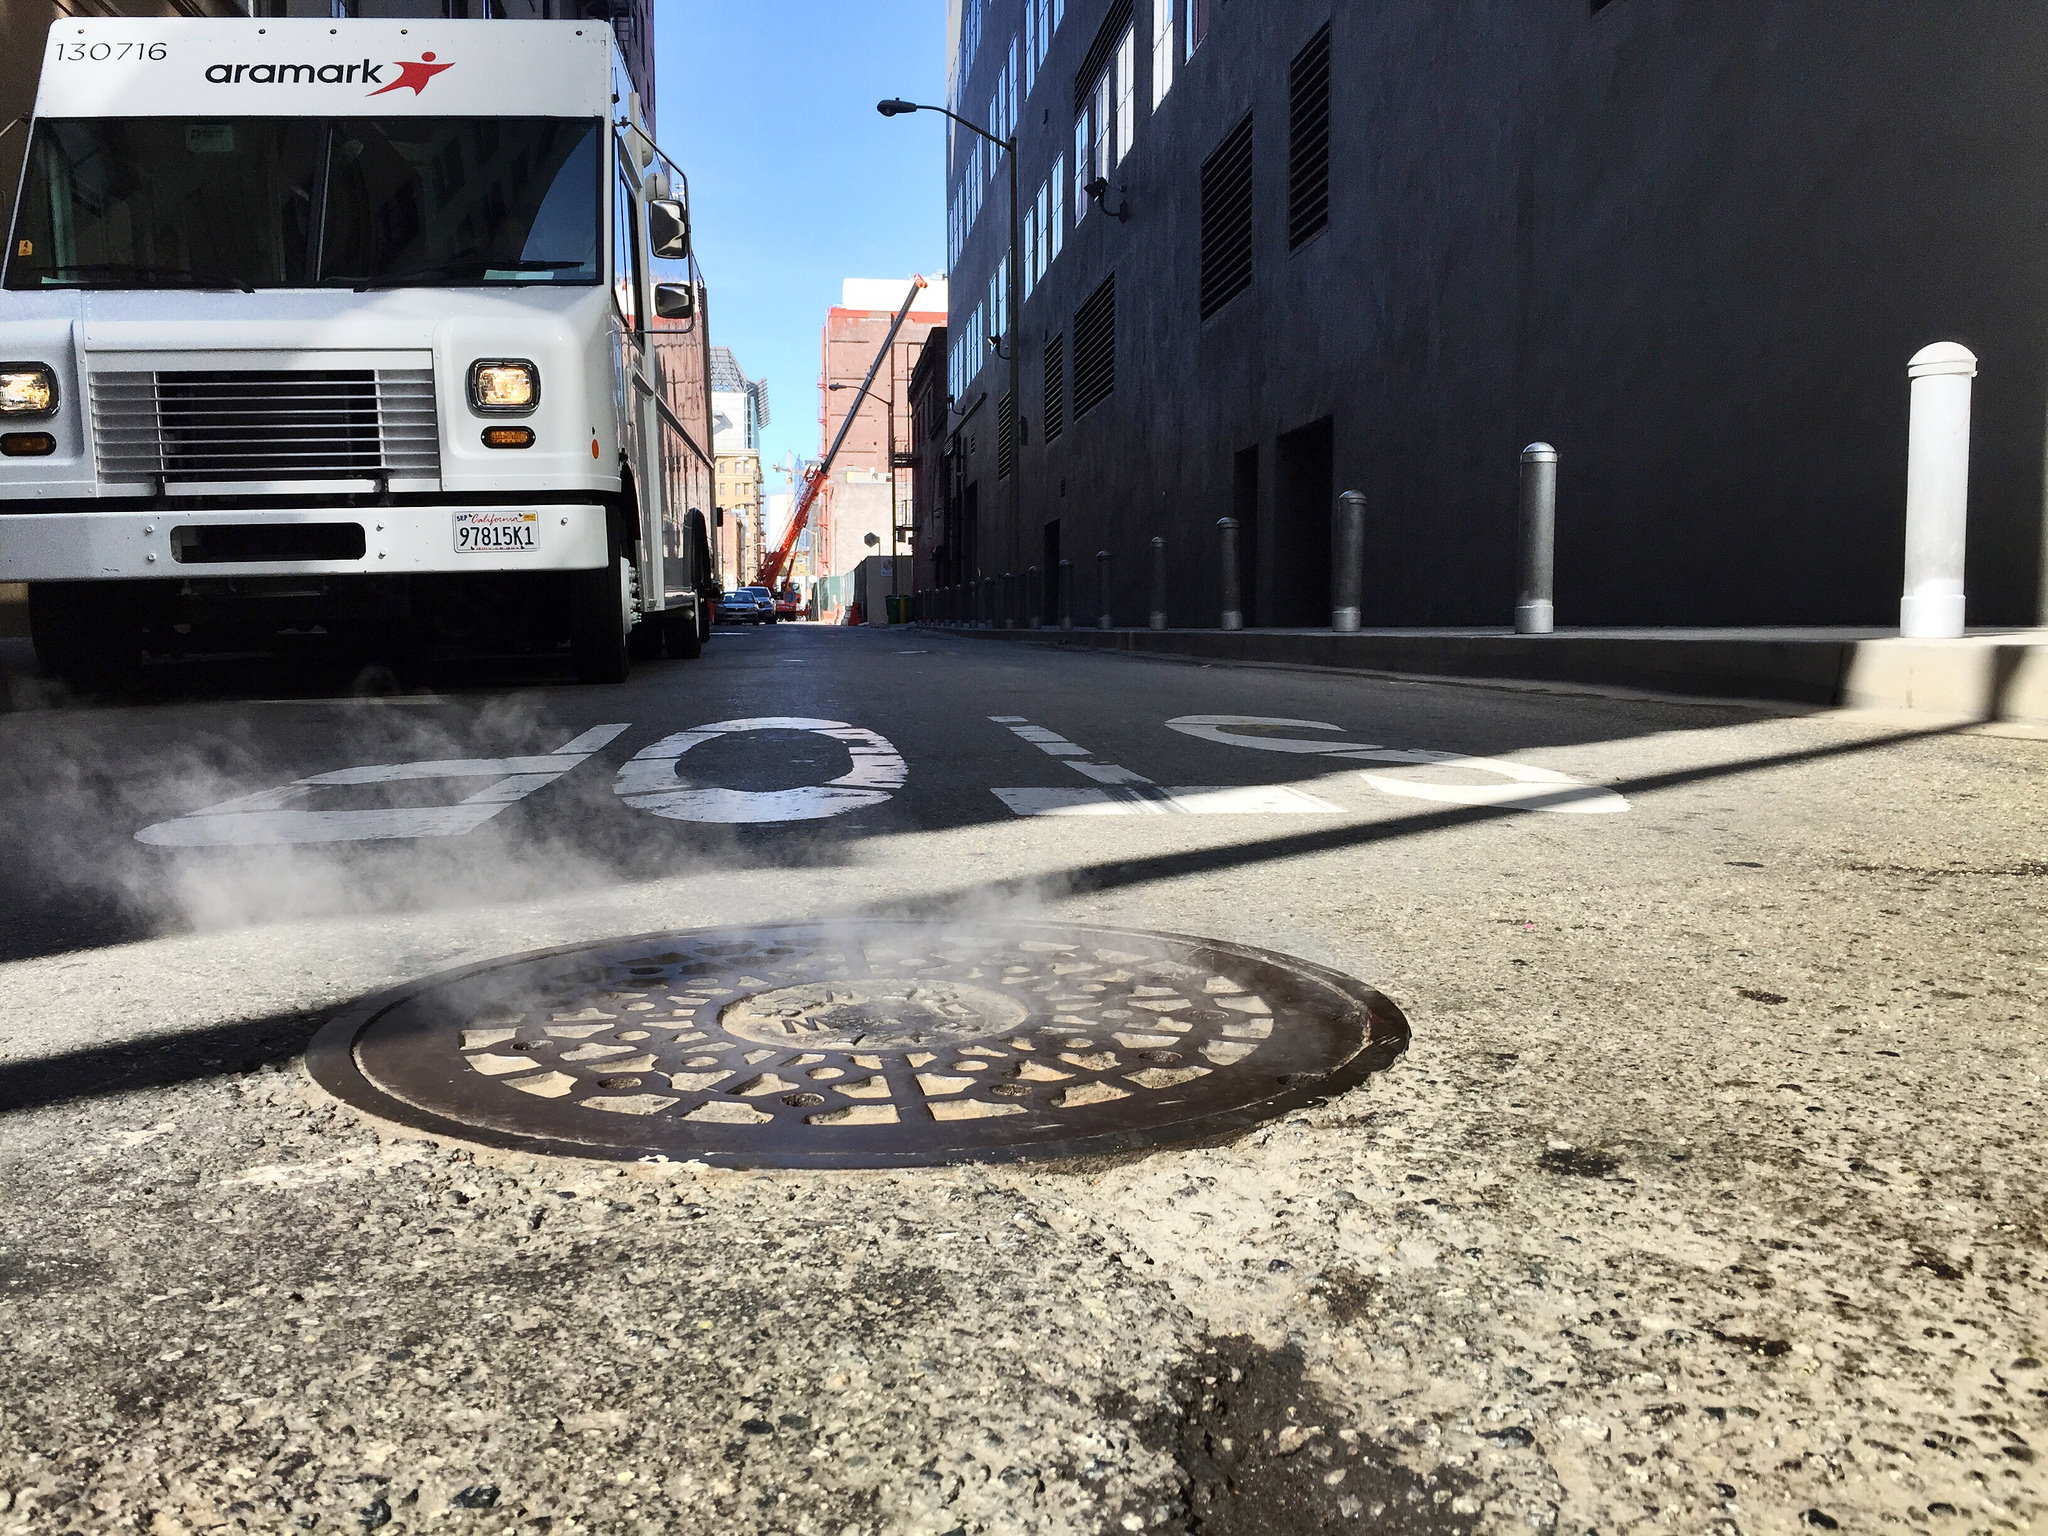 milwaukee city steam manhole cover aramark truck